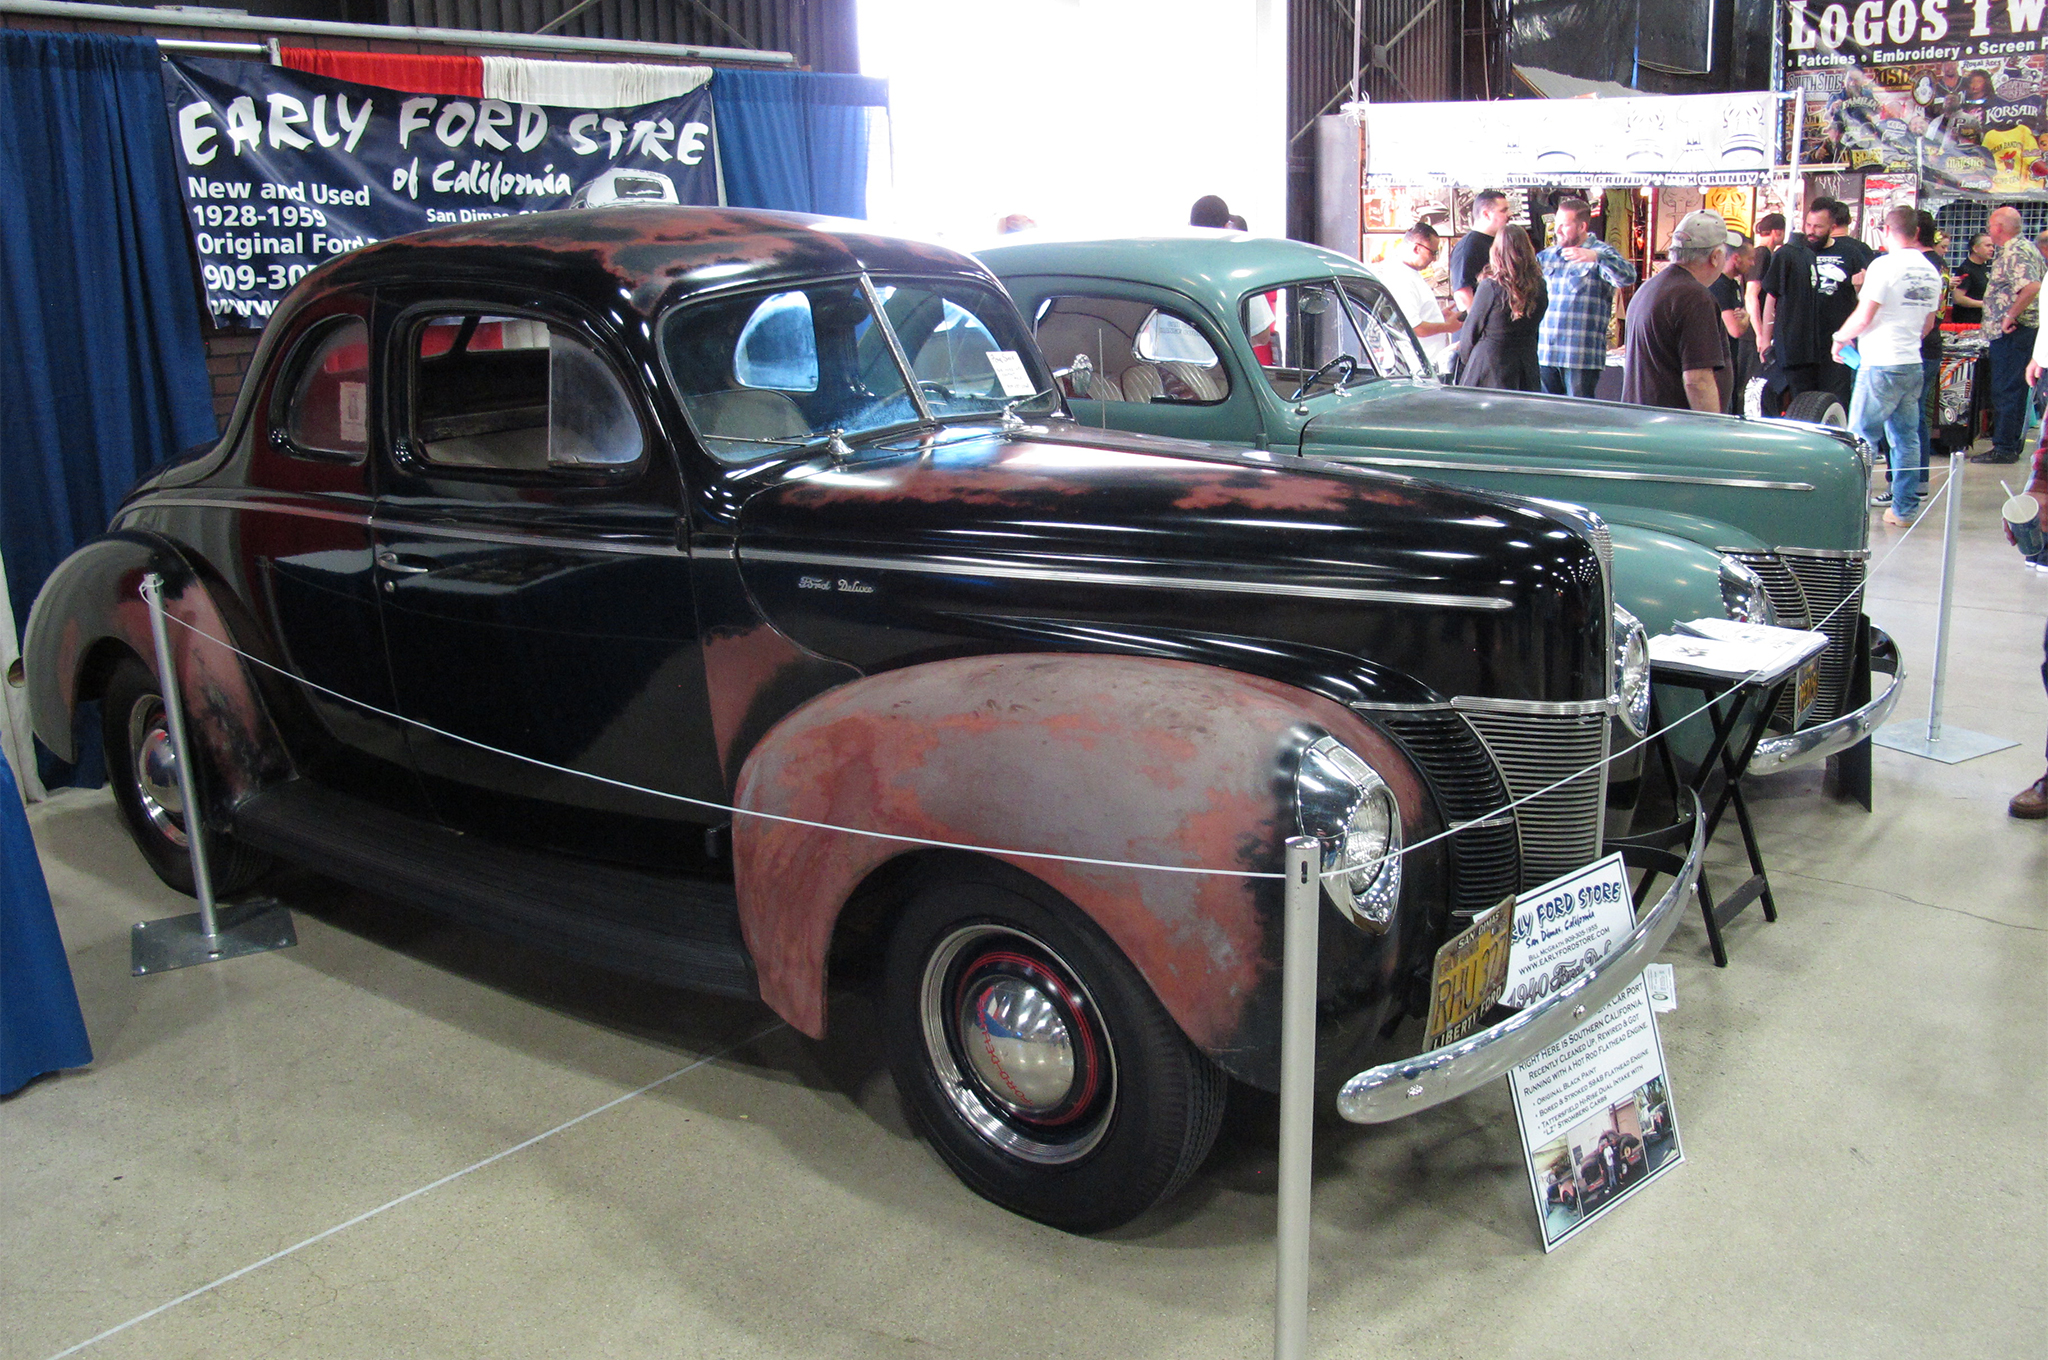 In addition to the special collection of '40 Fords, other '40s were scattered around the show, including these two time capsules brought by the Early Ford Store and parked in the Suede Palace. The green coupe in the background, an untouched early '50s hot rod with an Olds mill and Cad/LaSalle transmission, sold almost immediately. The black coupe, with a mildly built flathead and still wearing original paint, had been parked in a SoCal garage for decades. It was still looking for a home when we left the show Sunday.